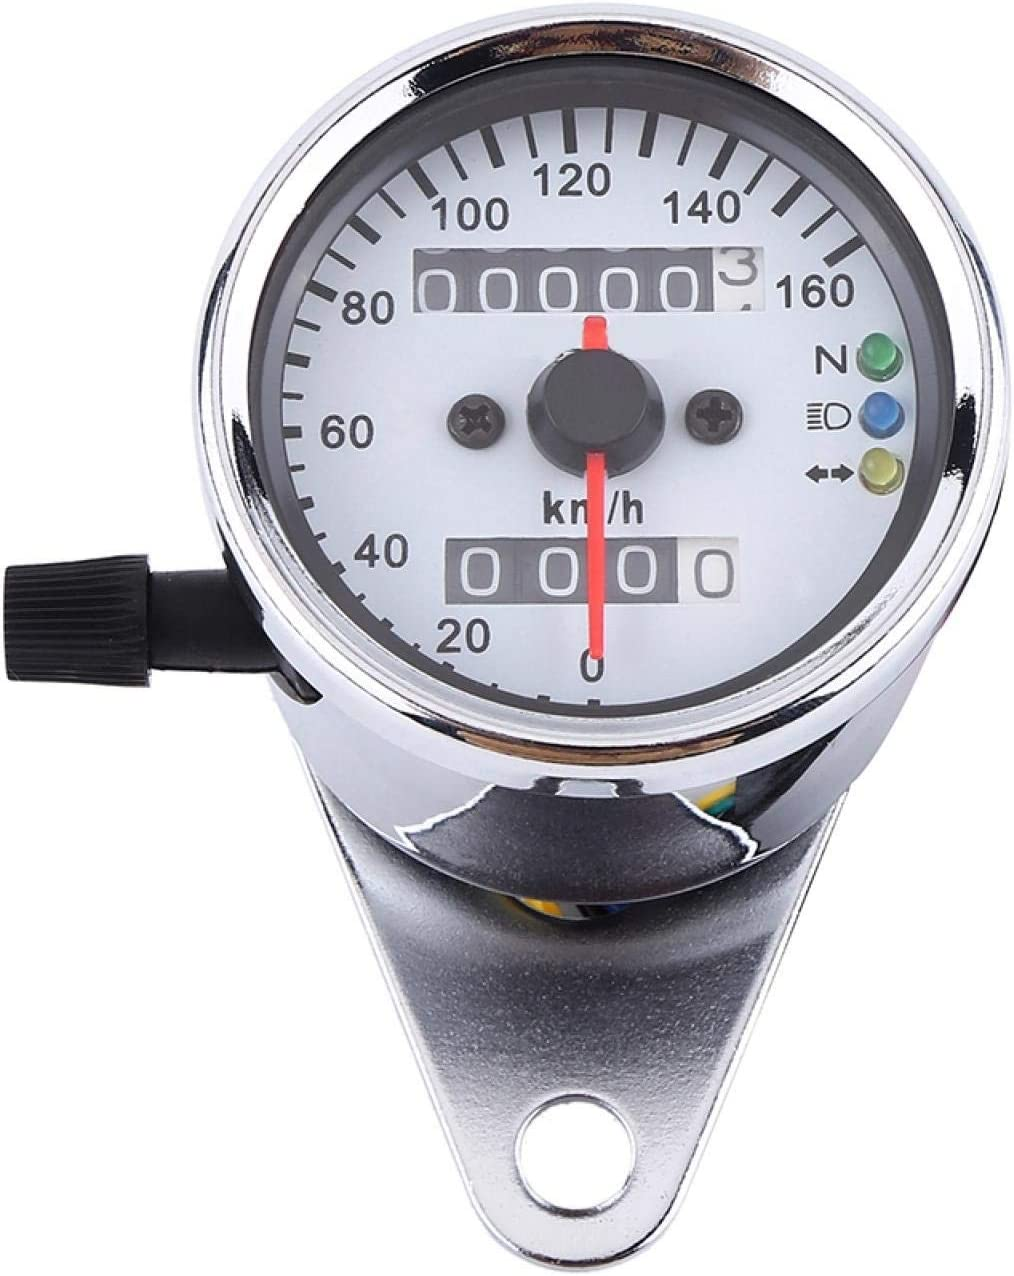 Shoplice Motorcycle Odometer S New color Universal 1pc A surprise price is realized